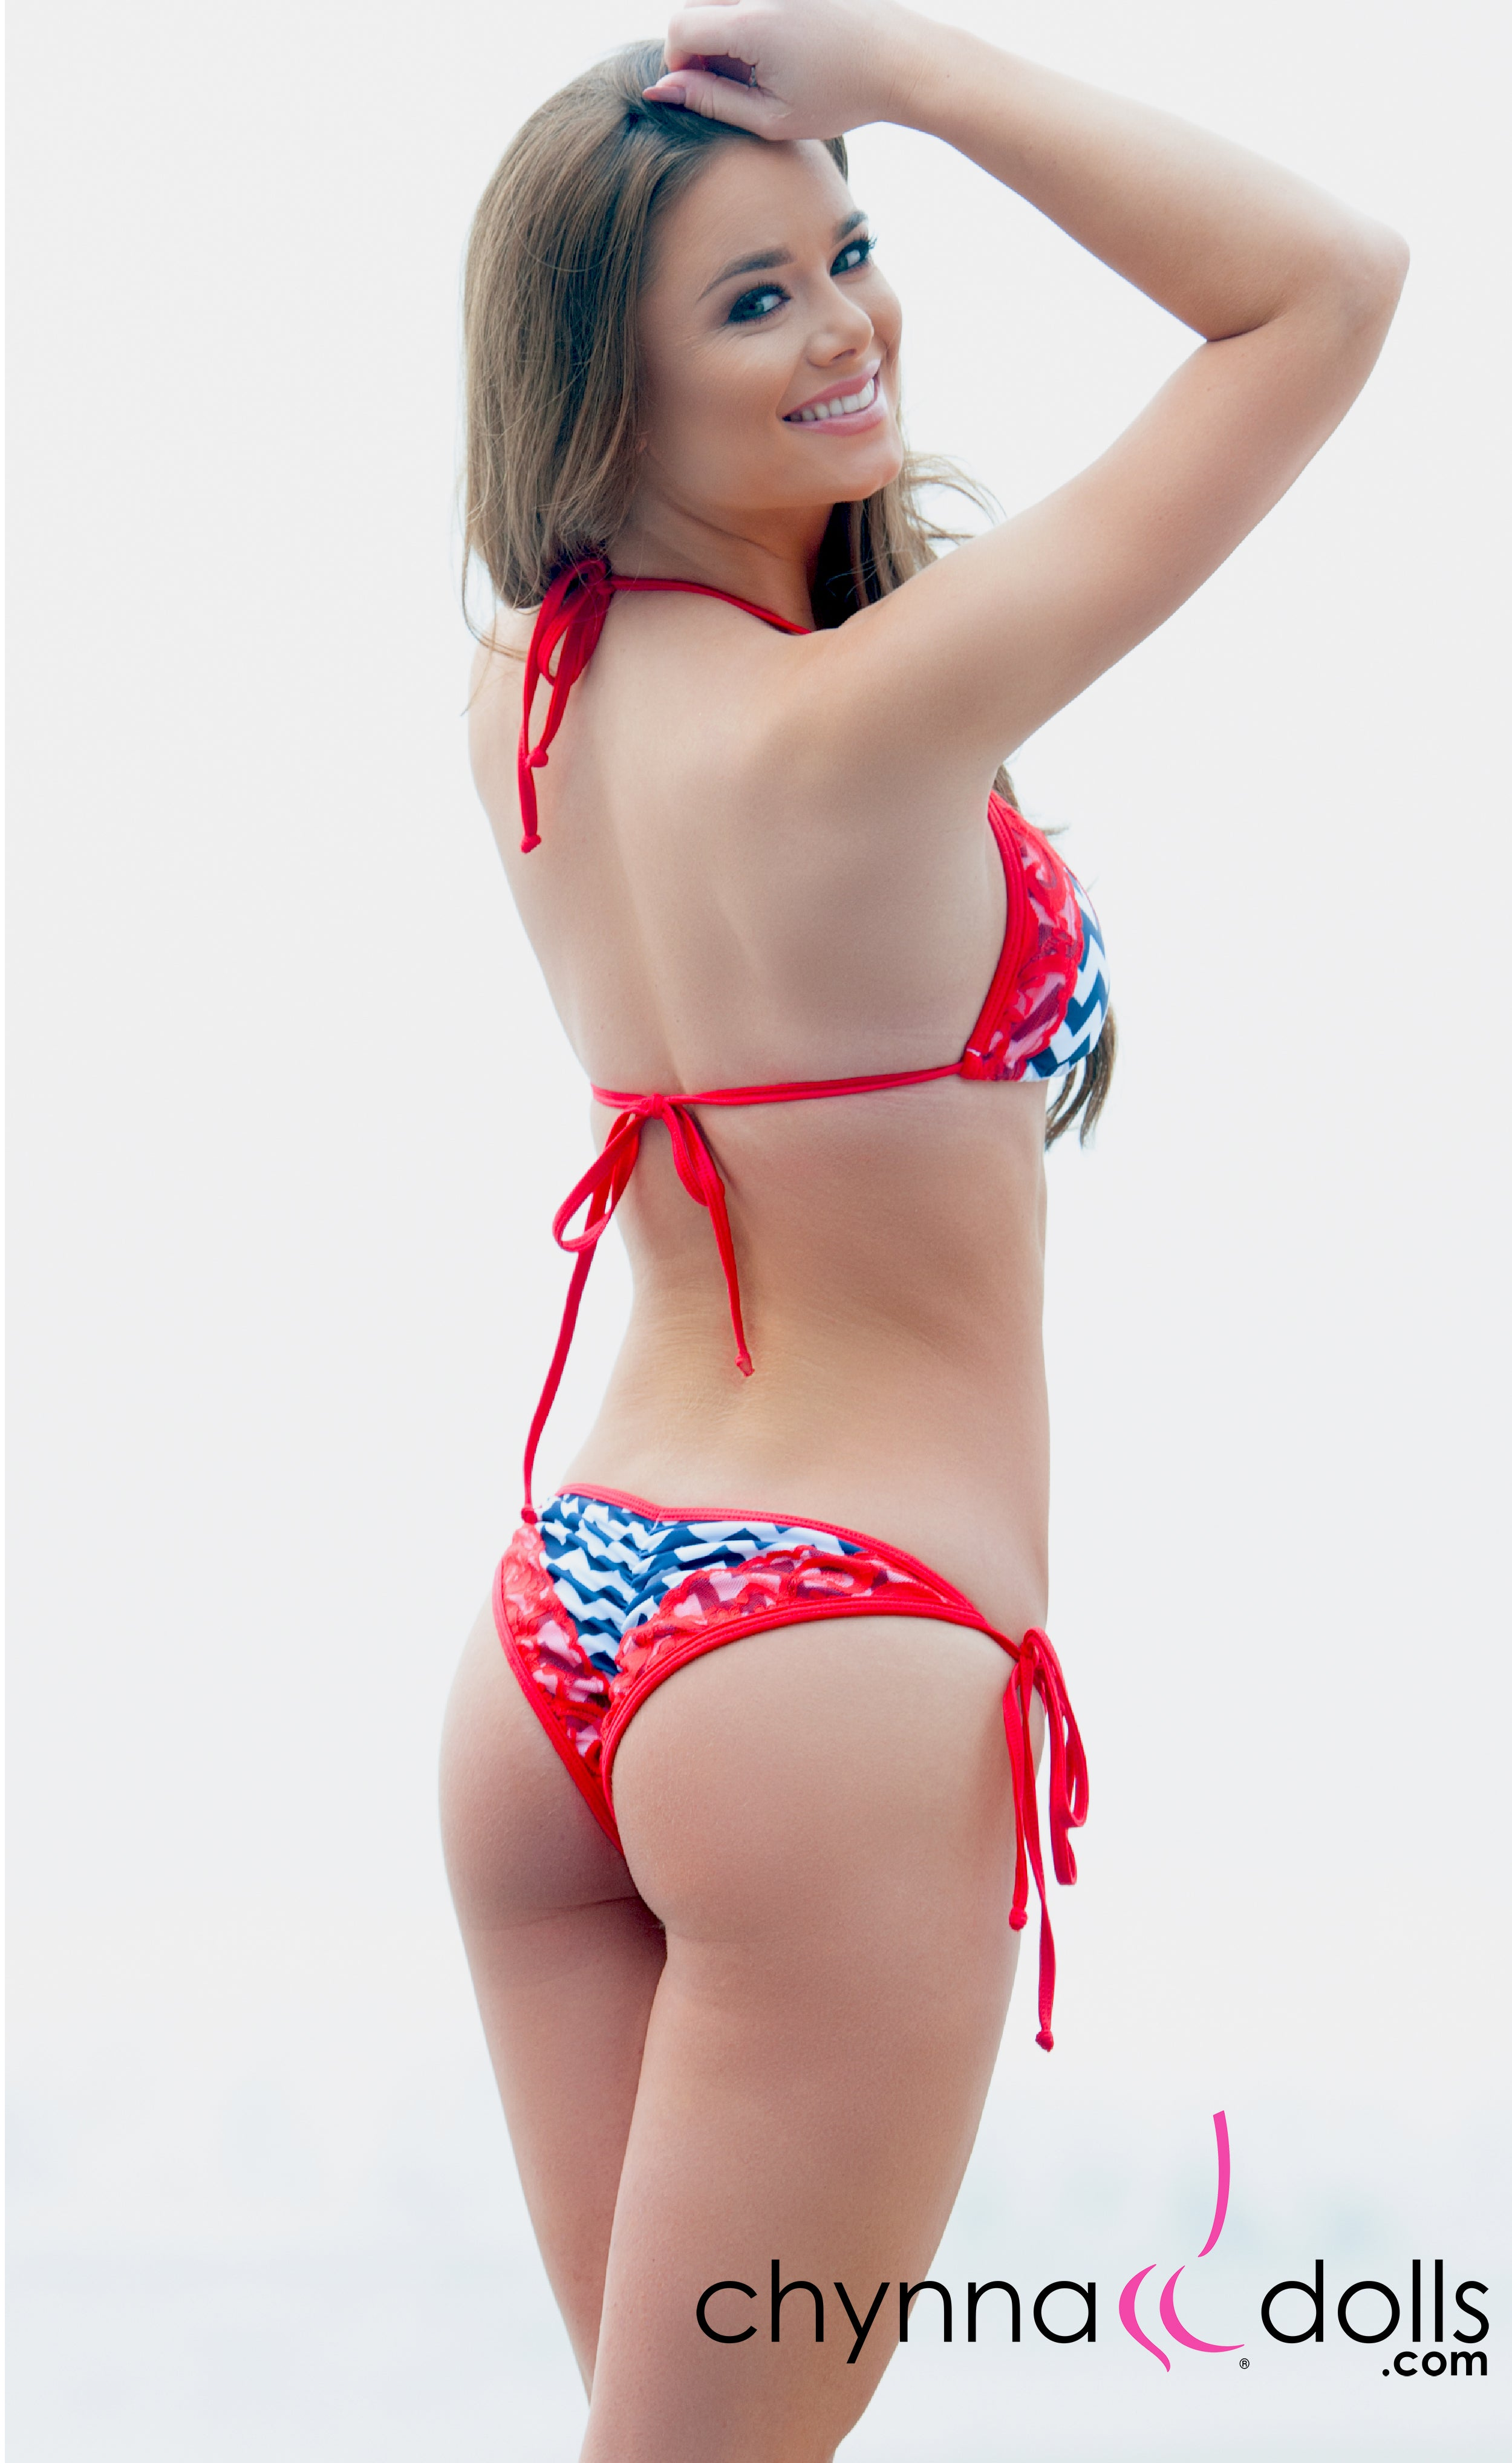 Naples: String Bikini in Navy Chevron Print w/ Red Lace and Trim